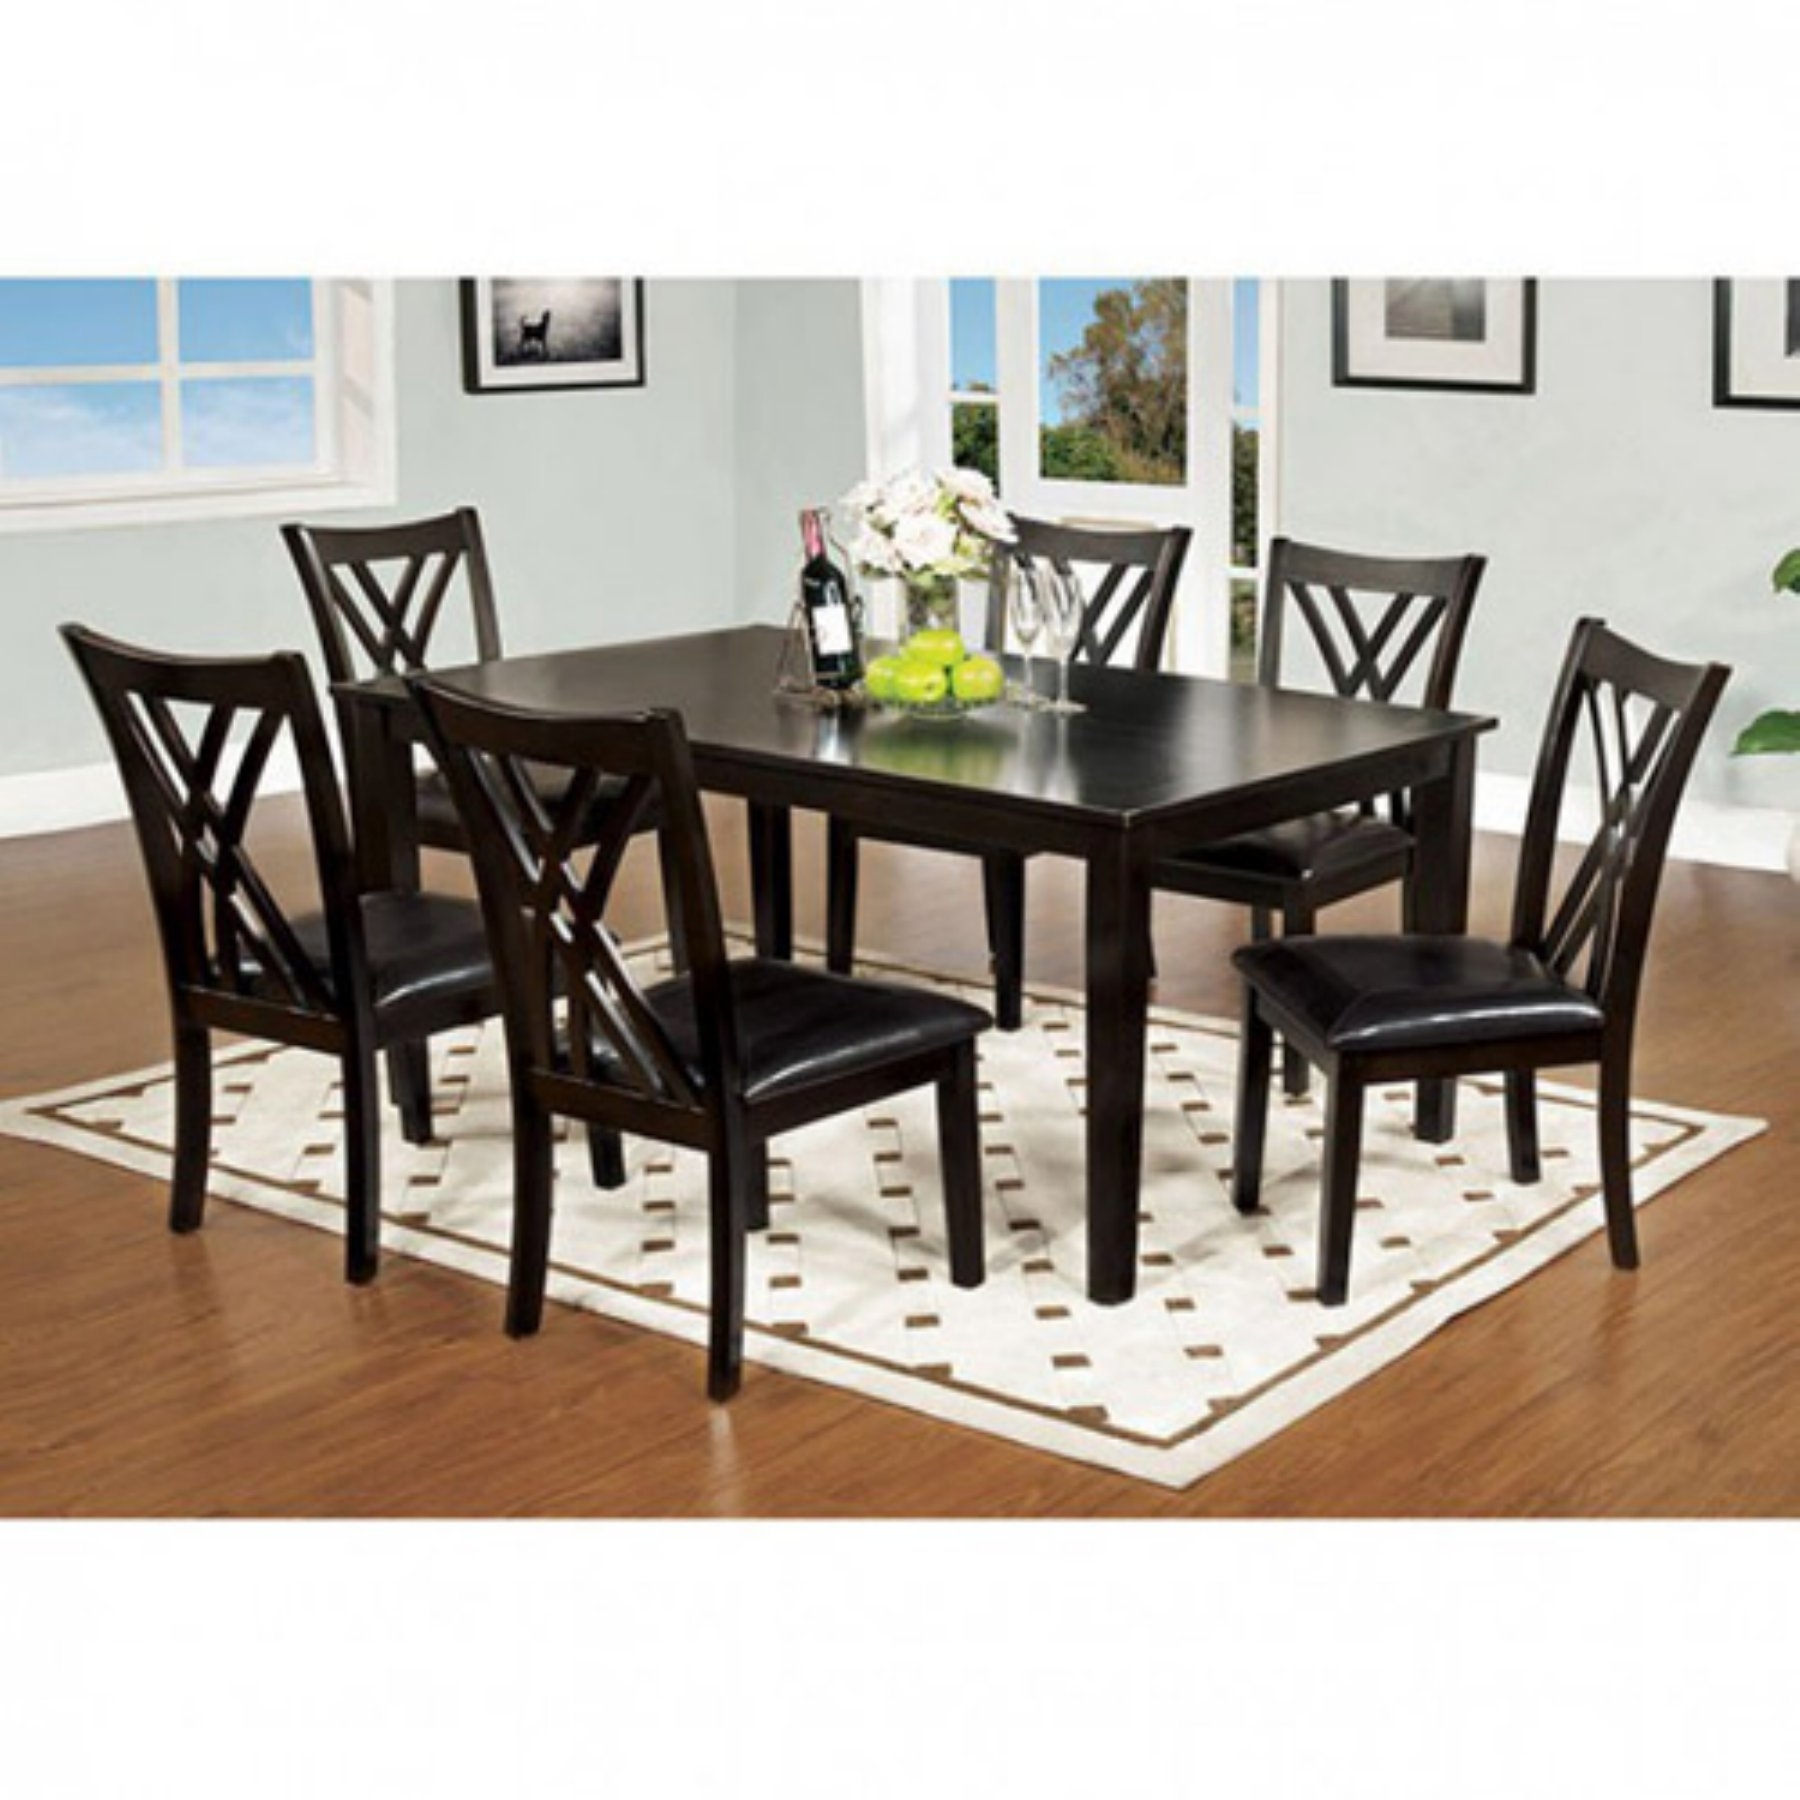 Benzara Springhill Enticing 7 Piece Rectangular Dining Table Set In With Regard To Newest Craftsman 7 Piece Rectangle Extension Dining Sets With Side Chairs (View 16 of 20)